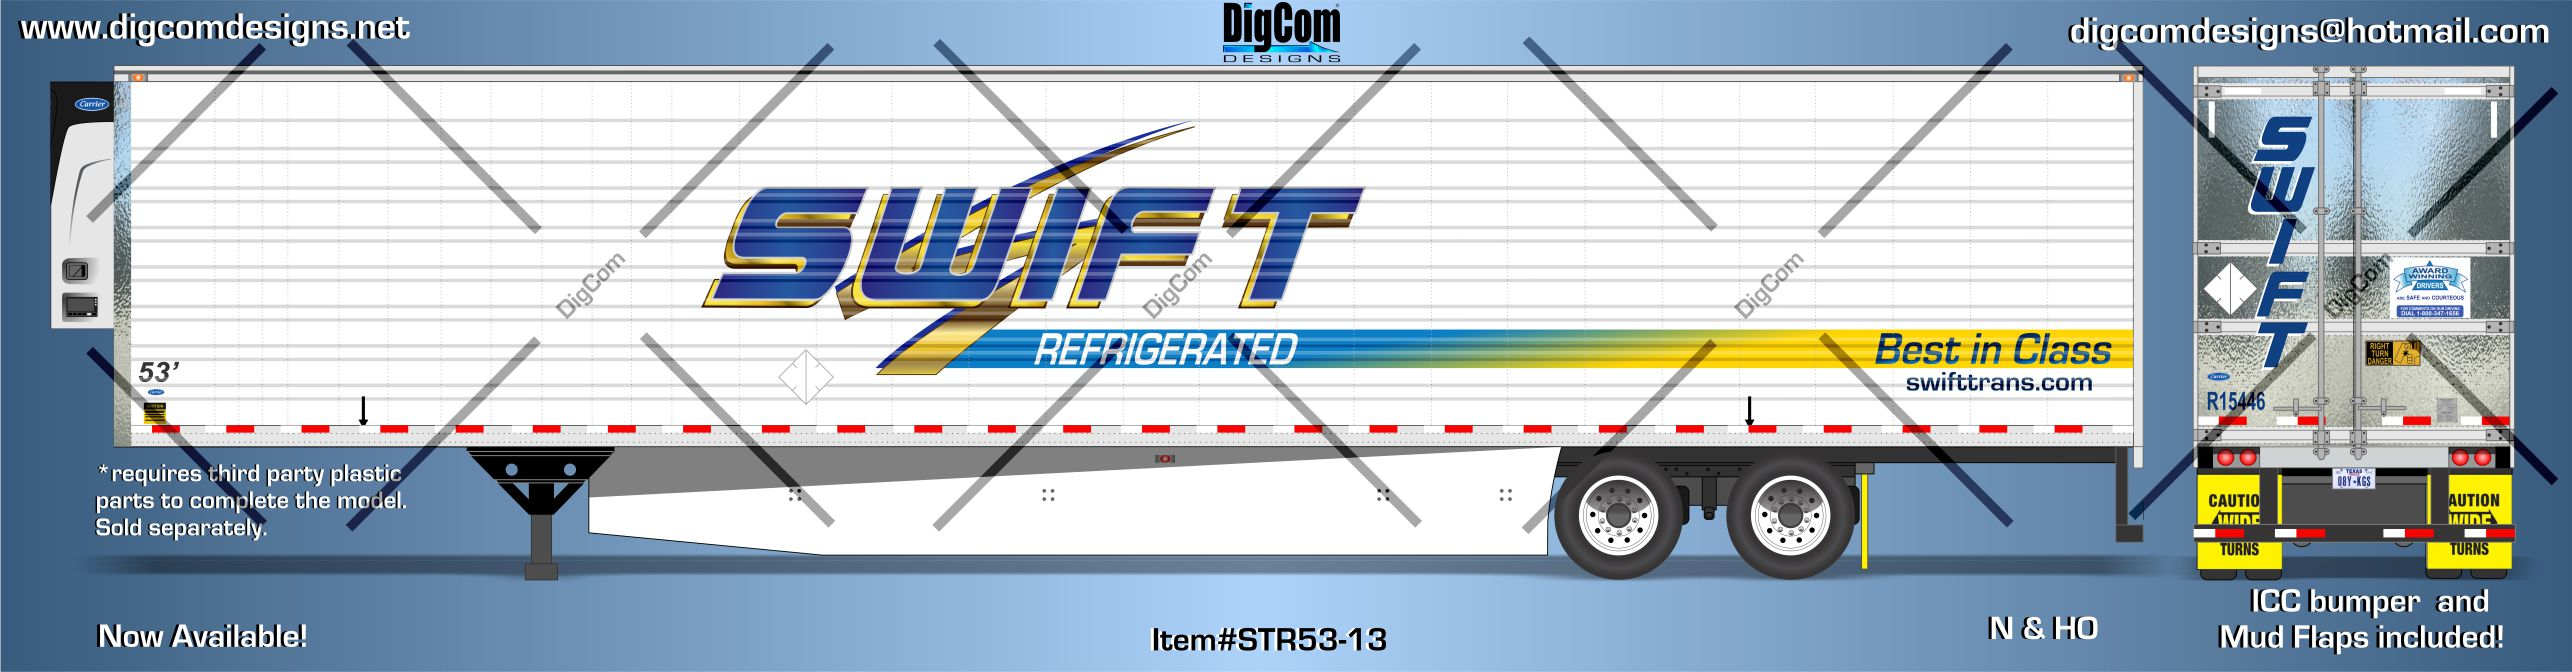 SWIFT TRAILER REEFER DESIGN.jpg